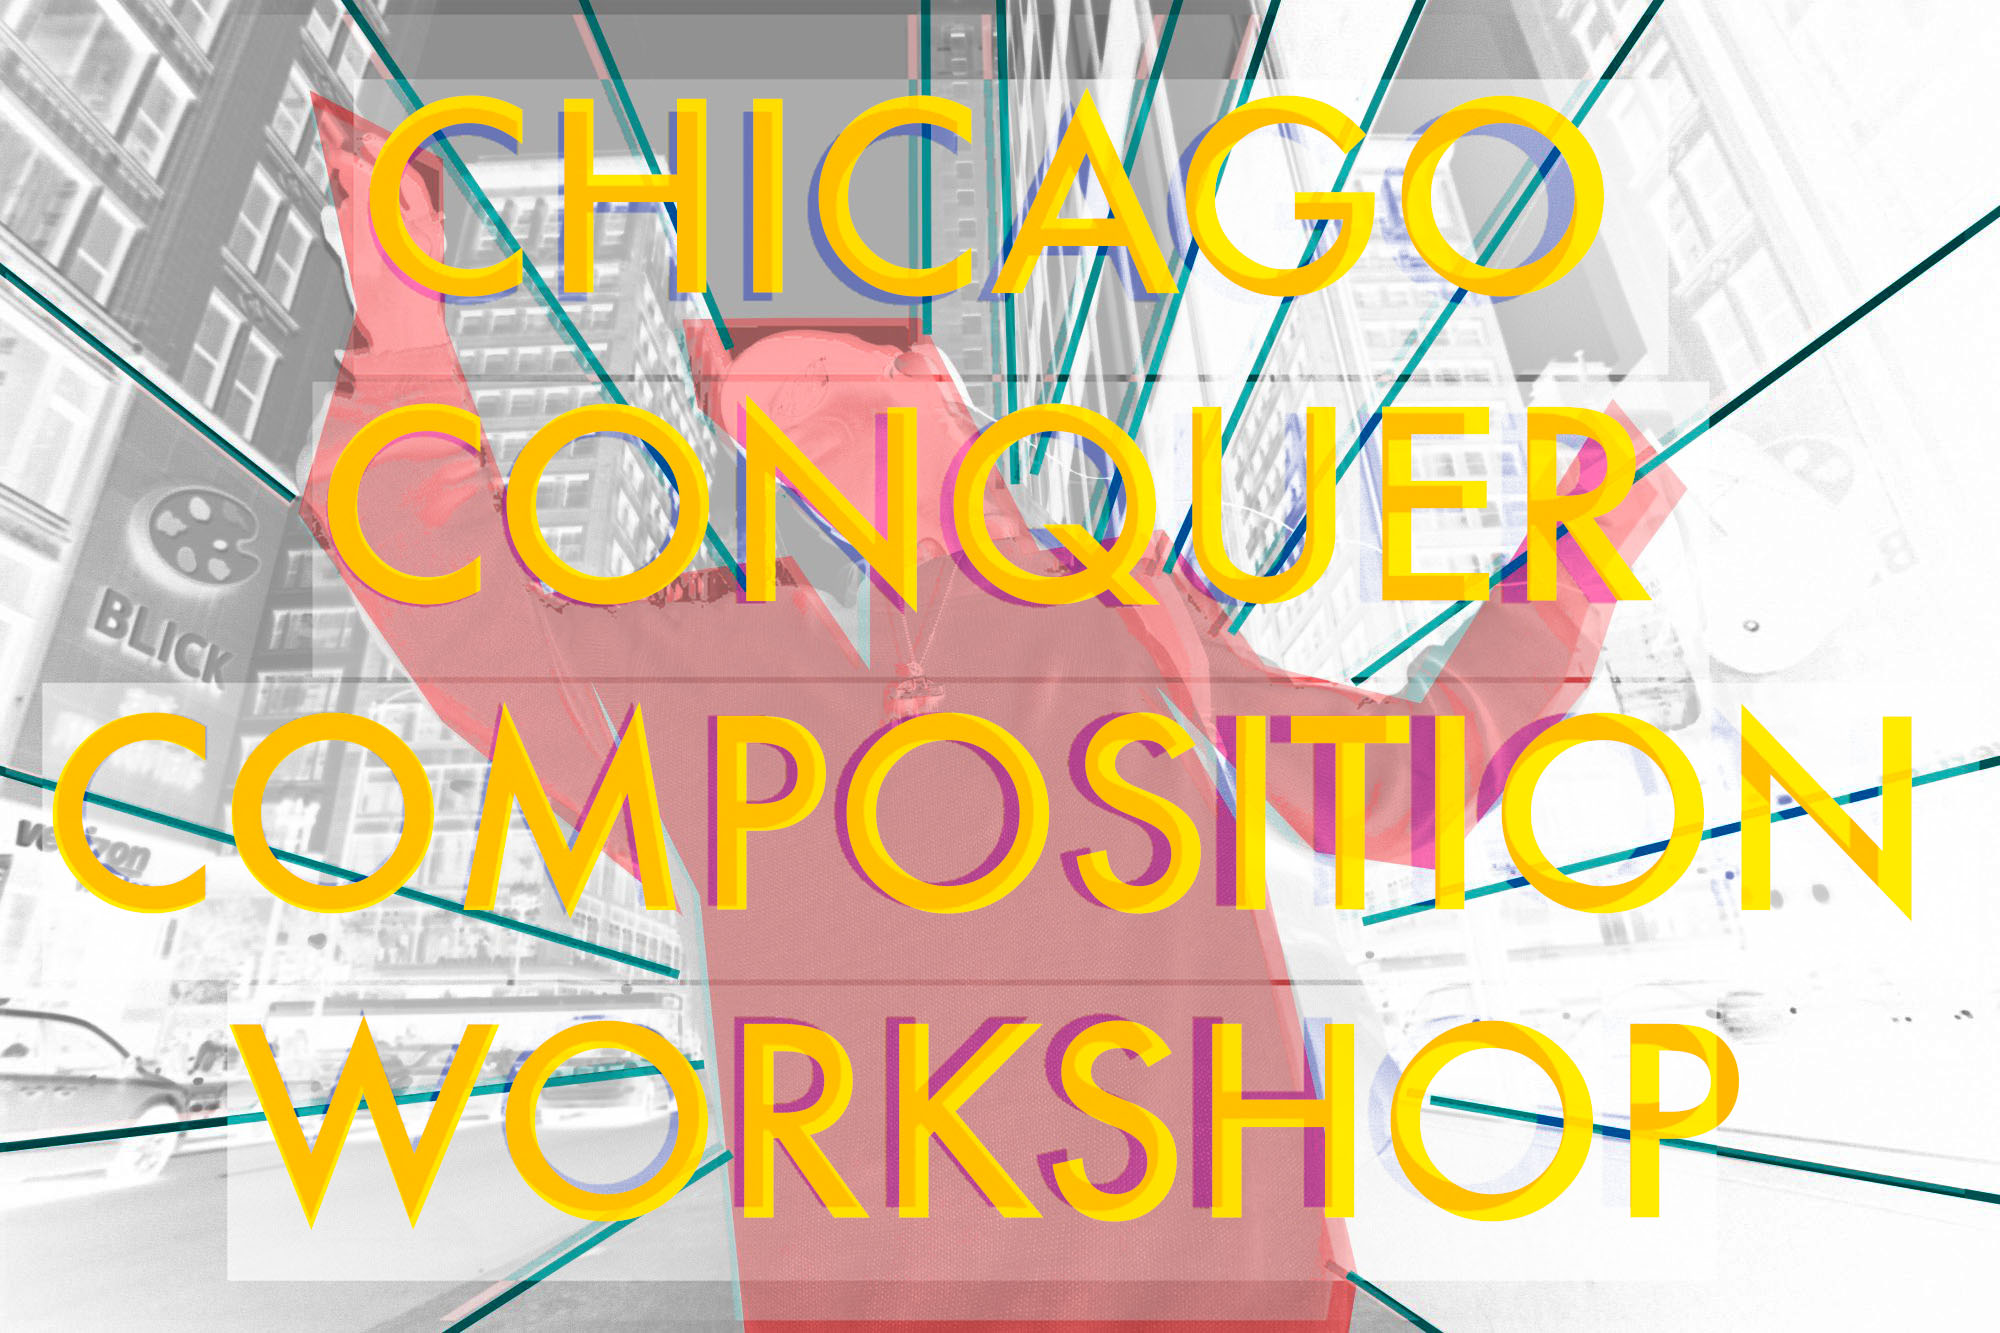 chicago-conquer-composition-workshop-ERIC-KIM-2020-